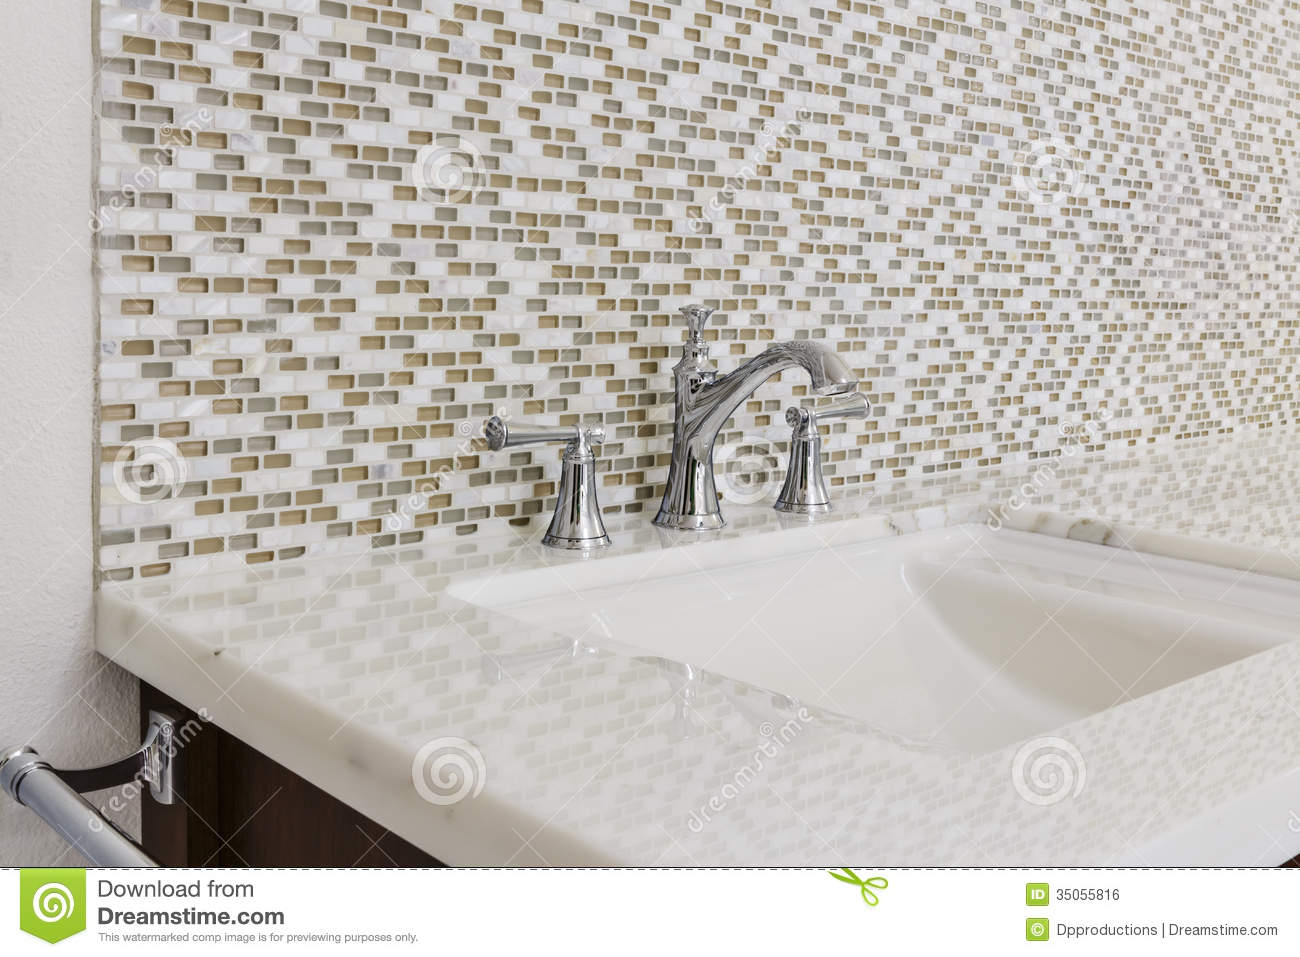 Contemporary Bathroom Sink And Fixture Stock Photo - Image of house ...